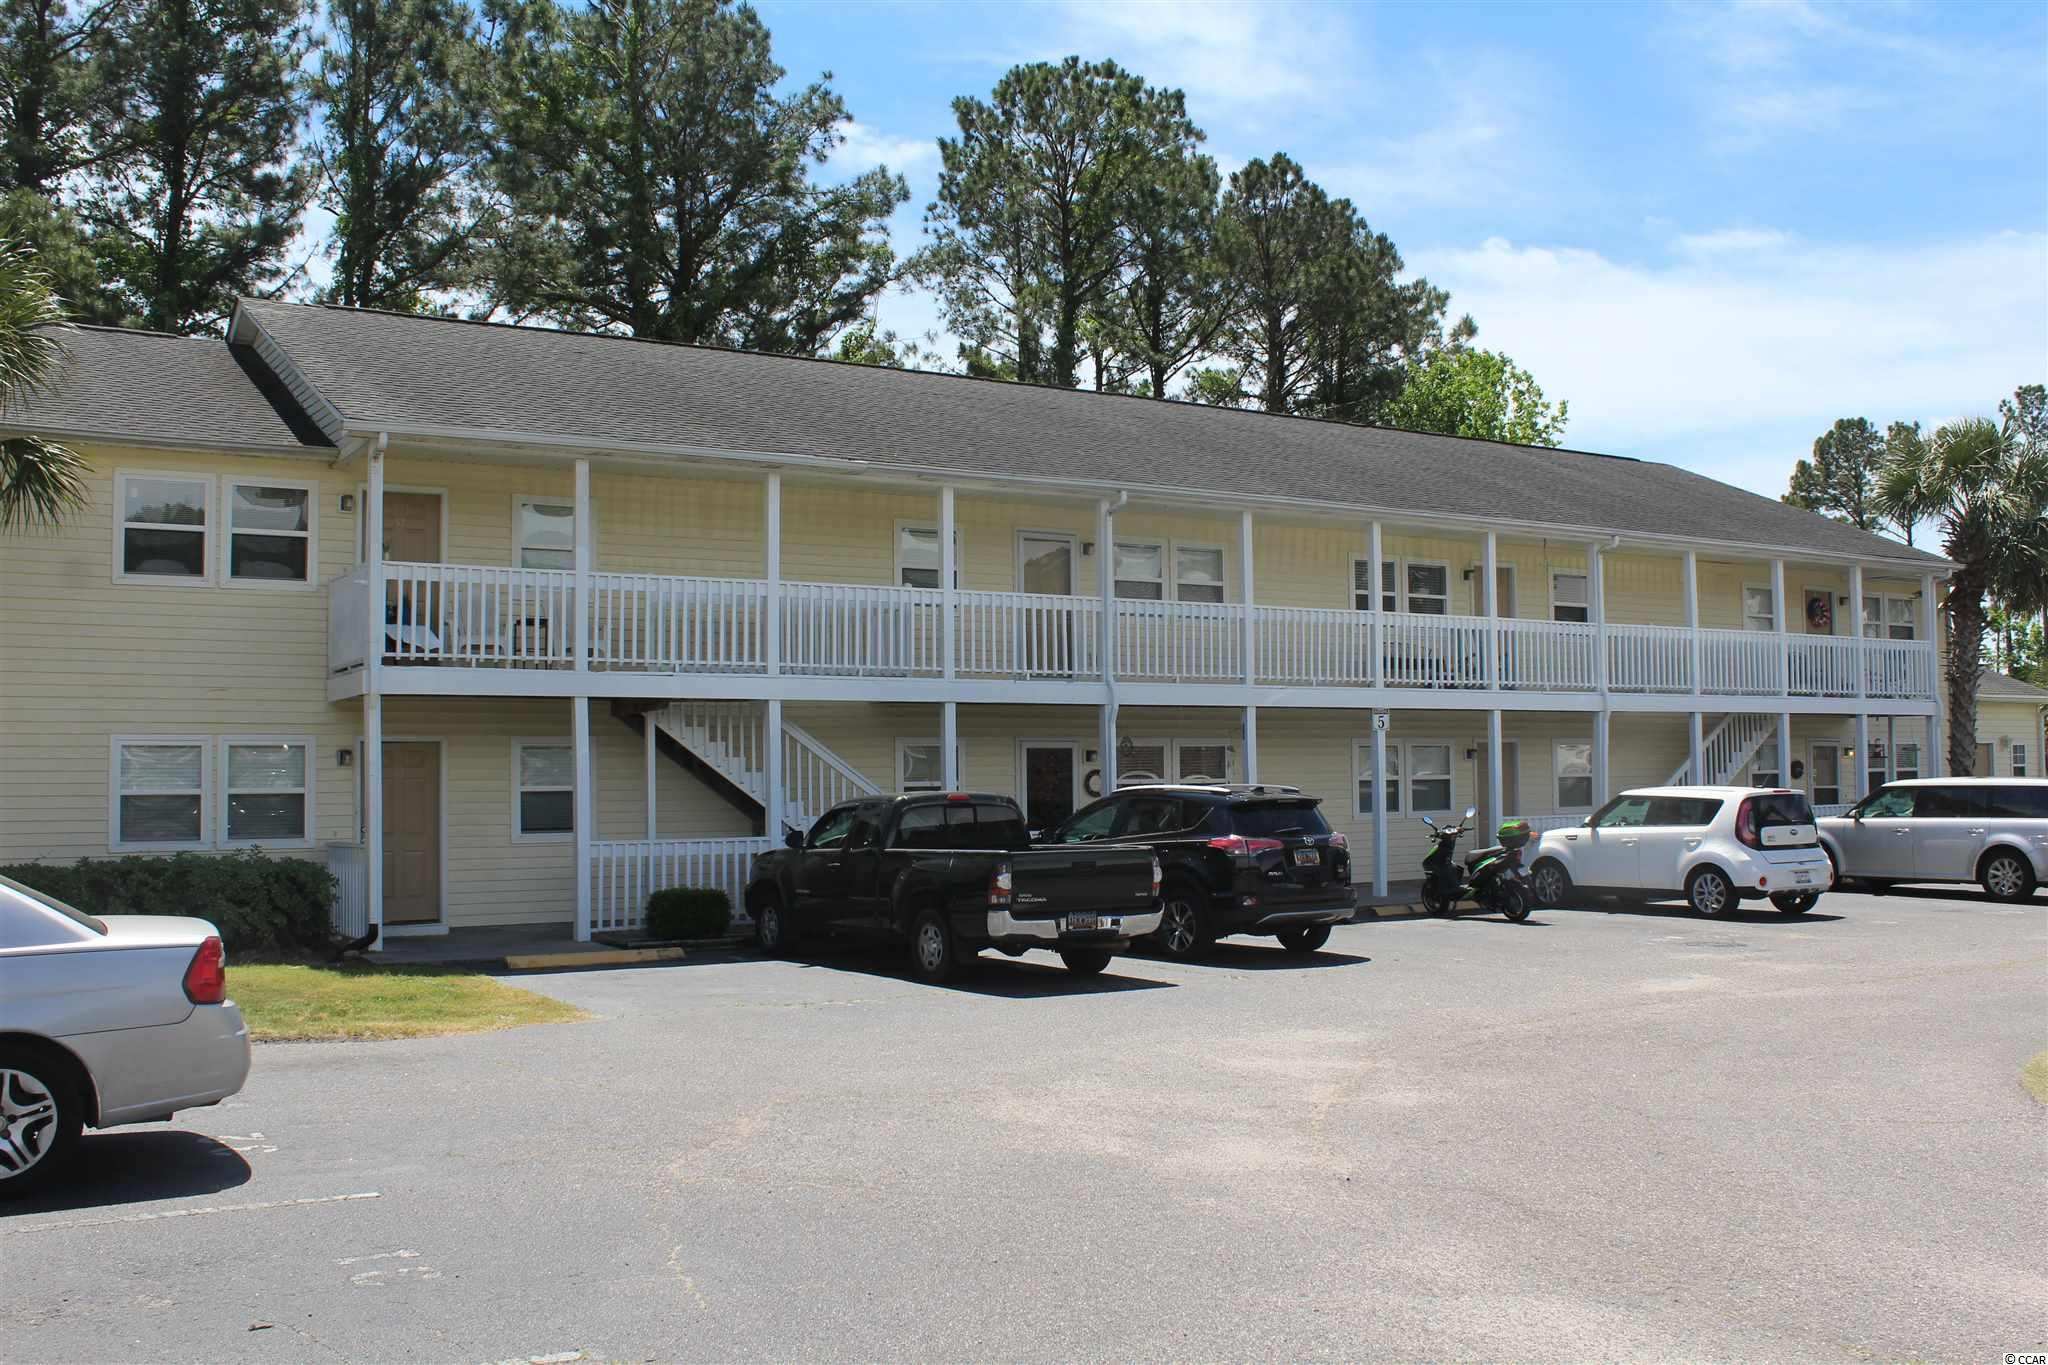 This quite 1st floor 3 bedroom 2 full baths condo within the Mallard Creek community of Little River awaits.  With some minor renovation this unit offers a great rental / investment opportunity - unit being Sold As Is.  Relax by the pool, enjoy a BBQ in the common area, or safely play within the gated playground.  Accessible to many of the areas stores, dining, hospitals, and entertainment - let's not forget the beautiful waters of Intracoastal and sandy beaches of the Atlantic Ocean.  Inventory is very low - schedule your showing today!